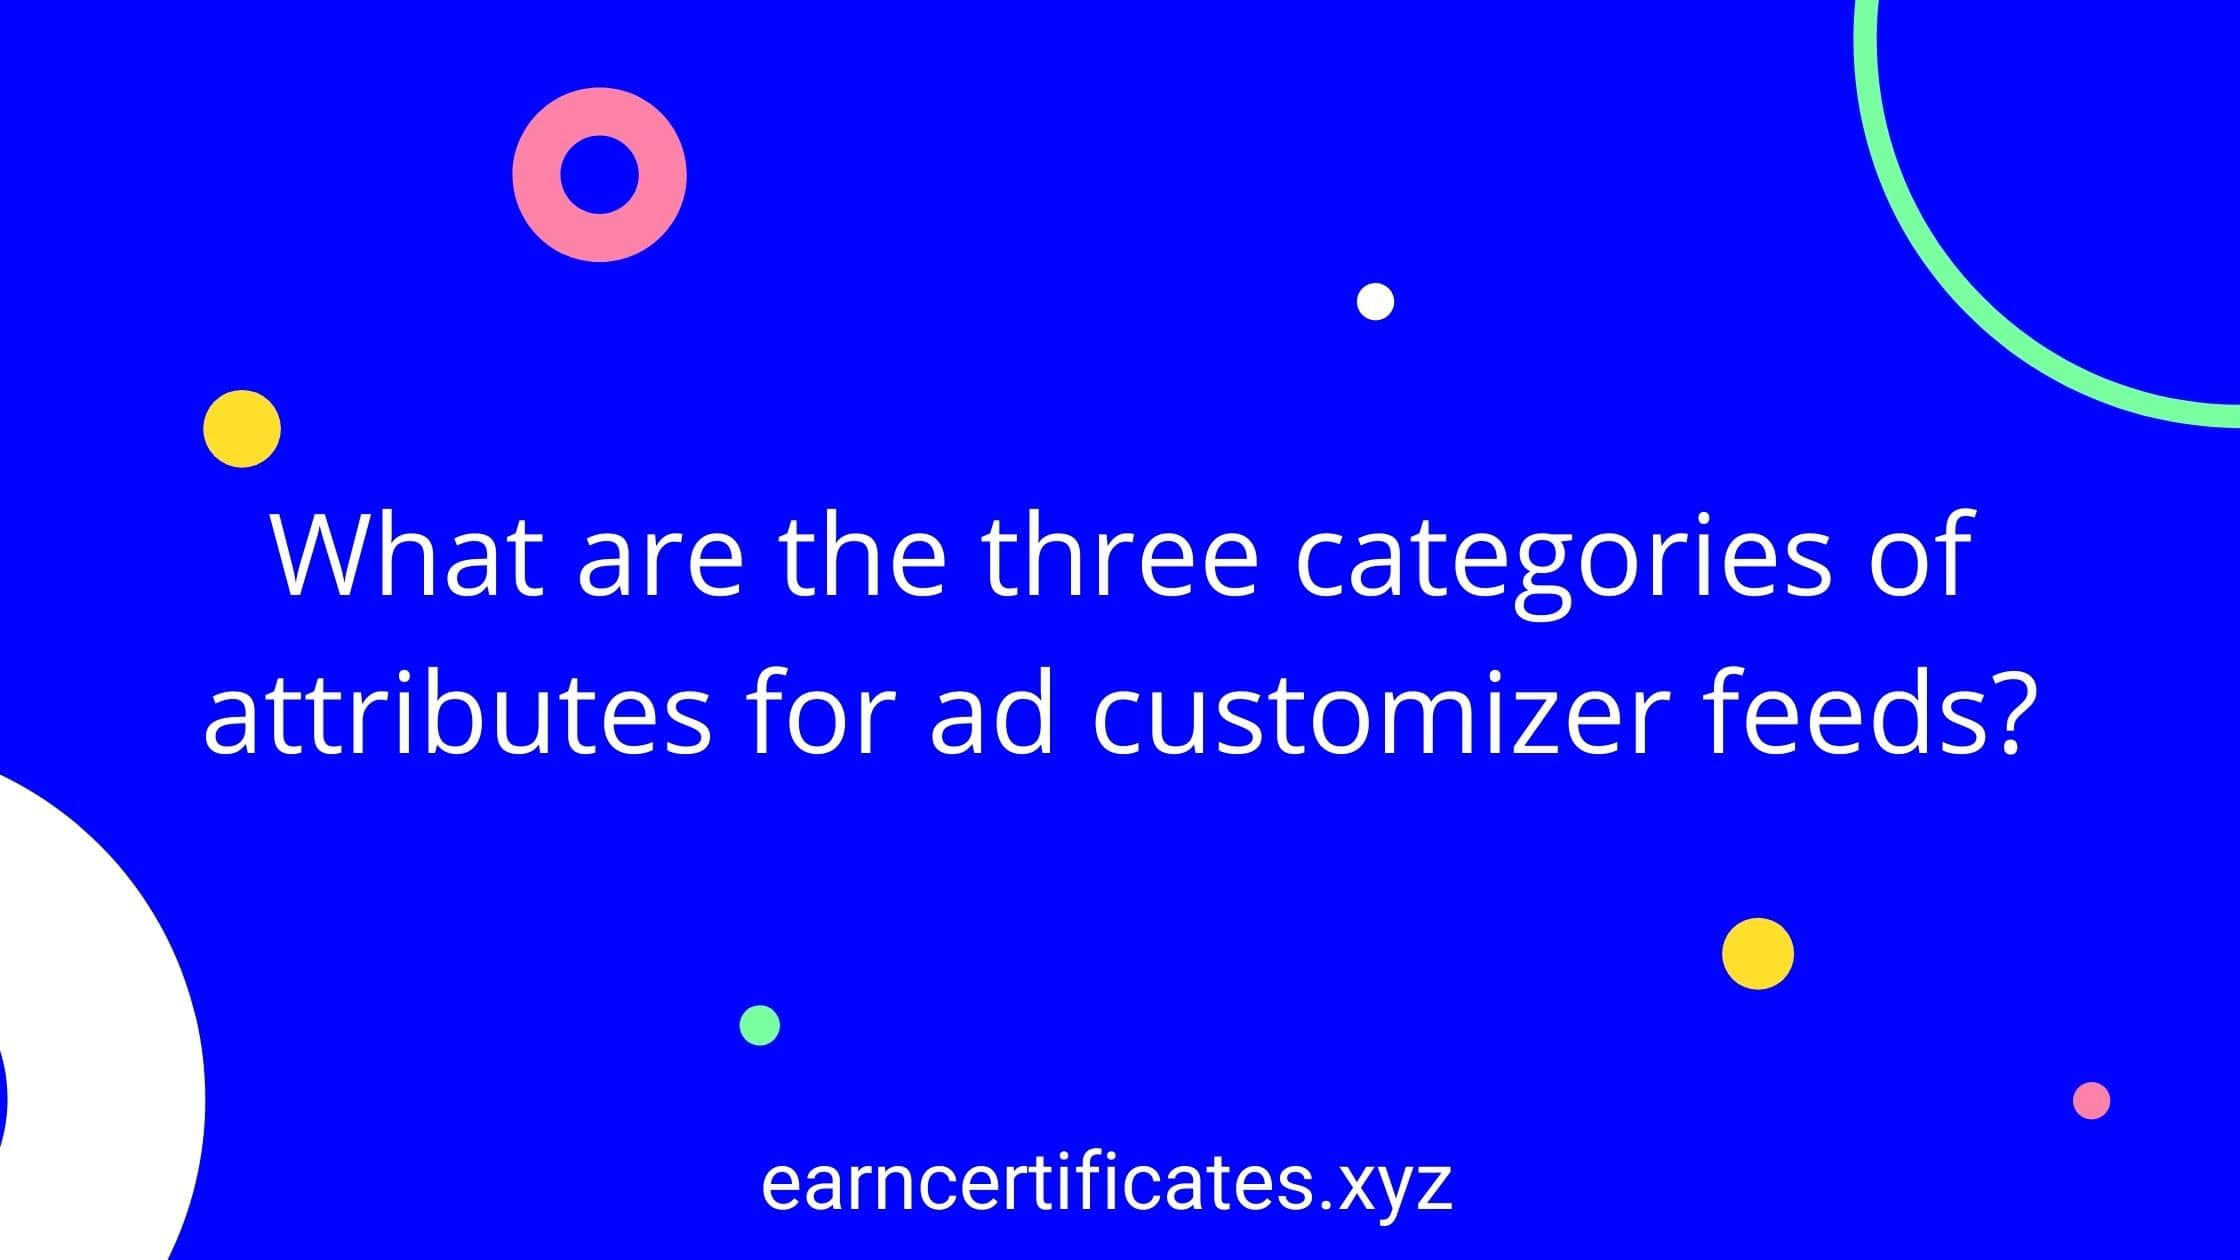 What are the three categories of attributes for ad customizer feeds?